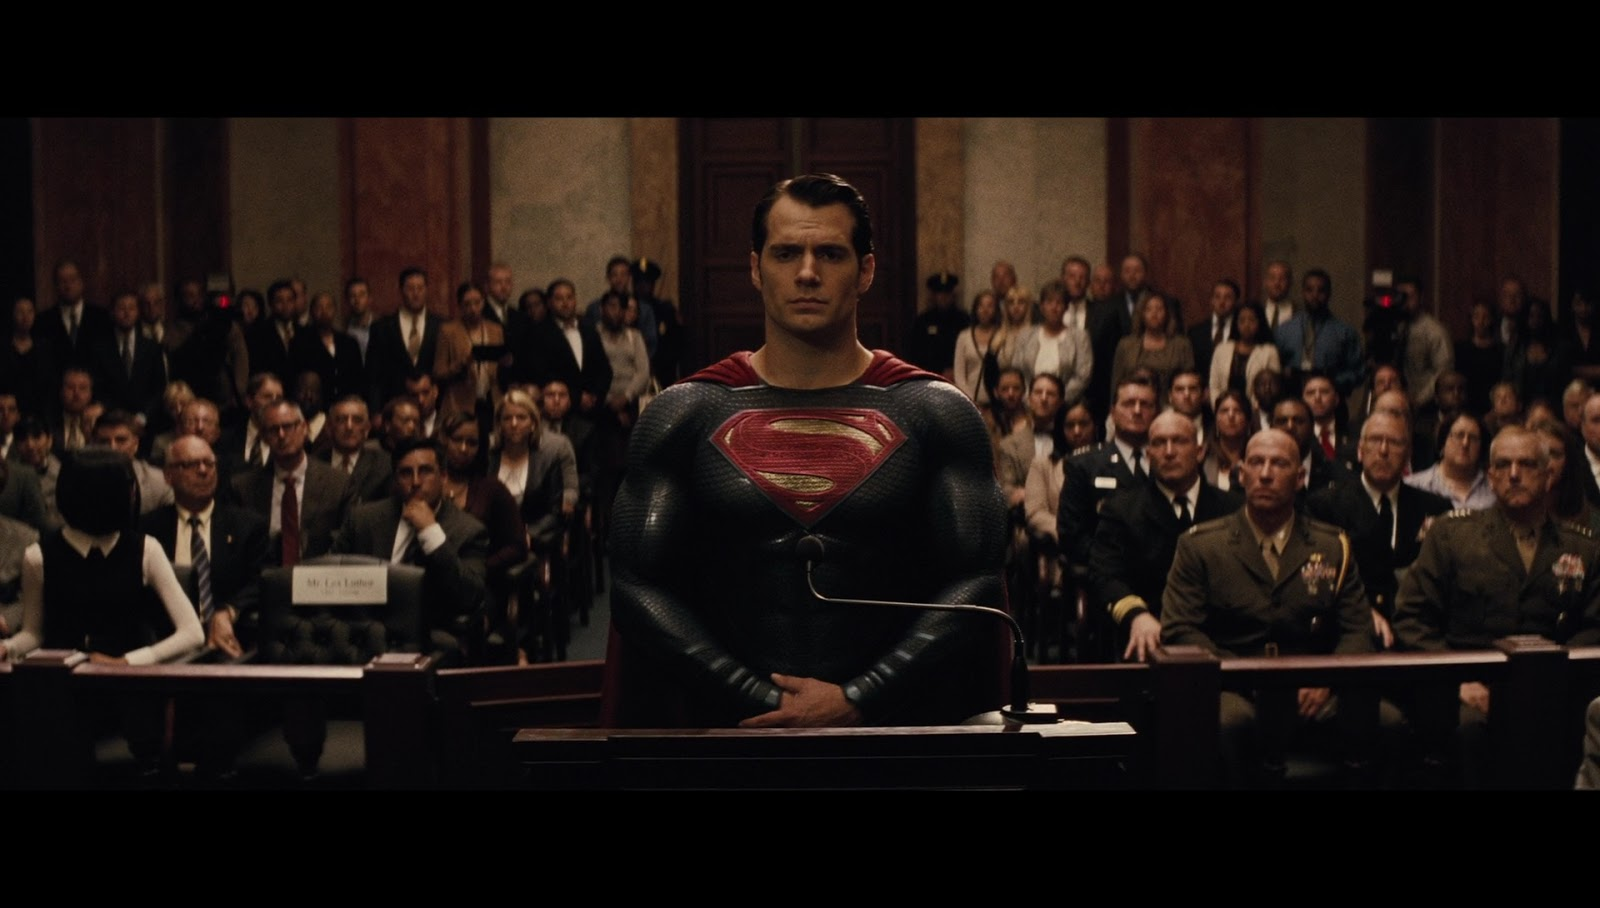 Descargar Batman vs Superman: El Origen de la Justicia Latino por MEGA.